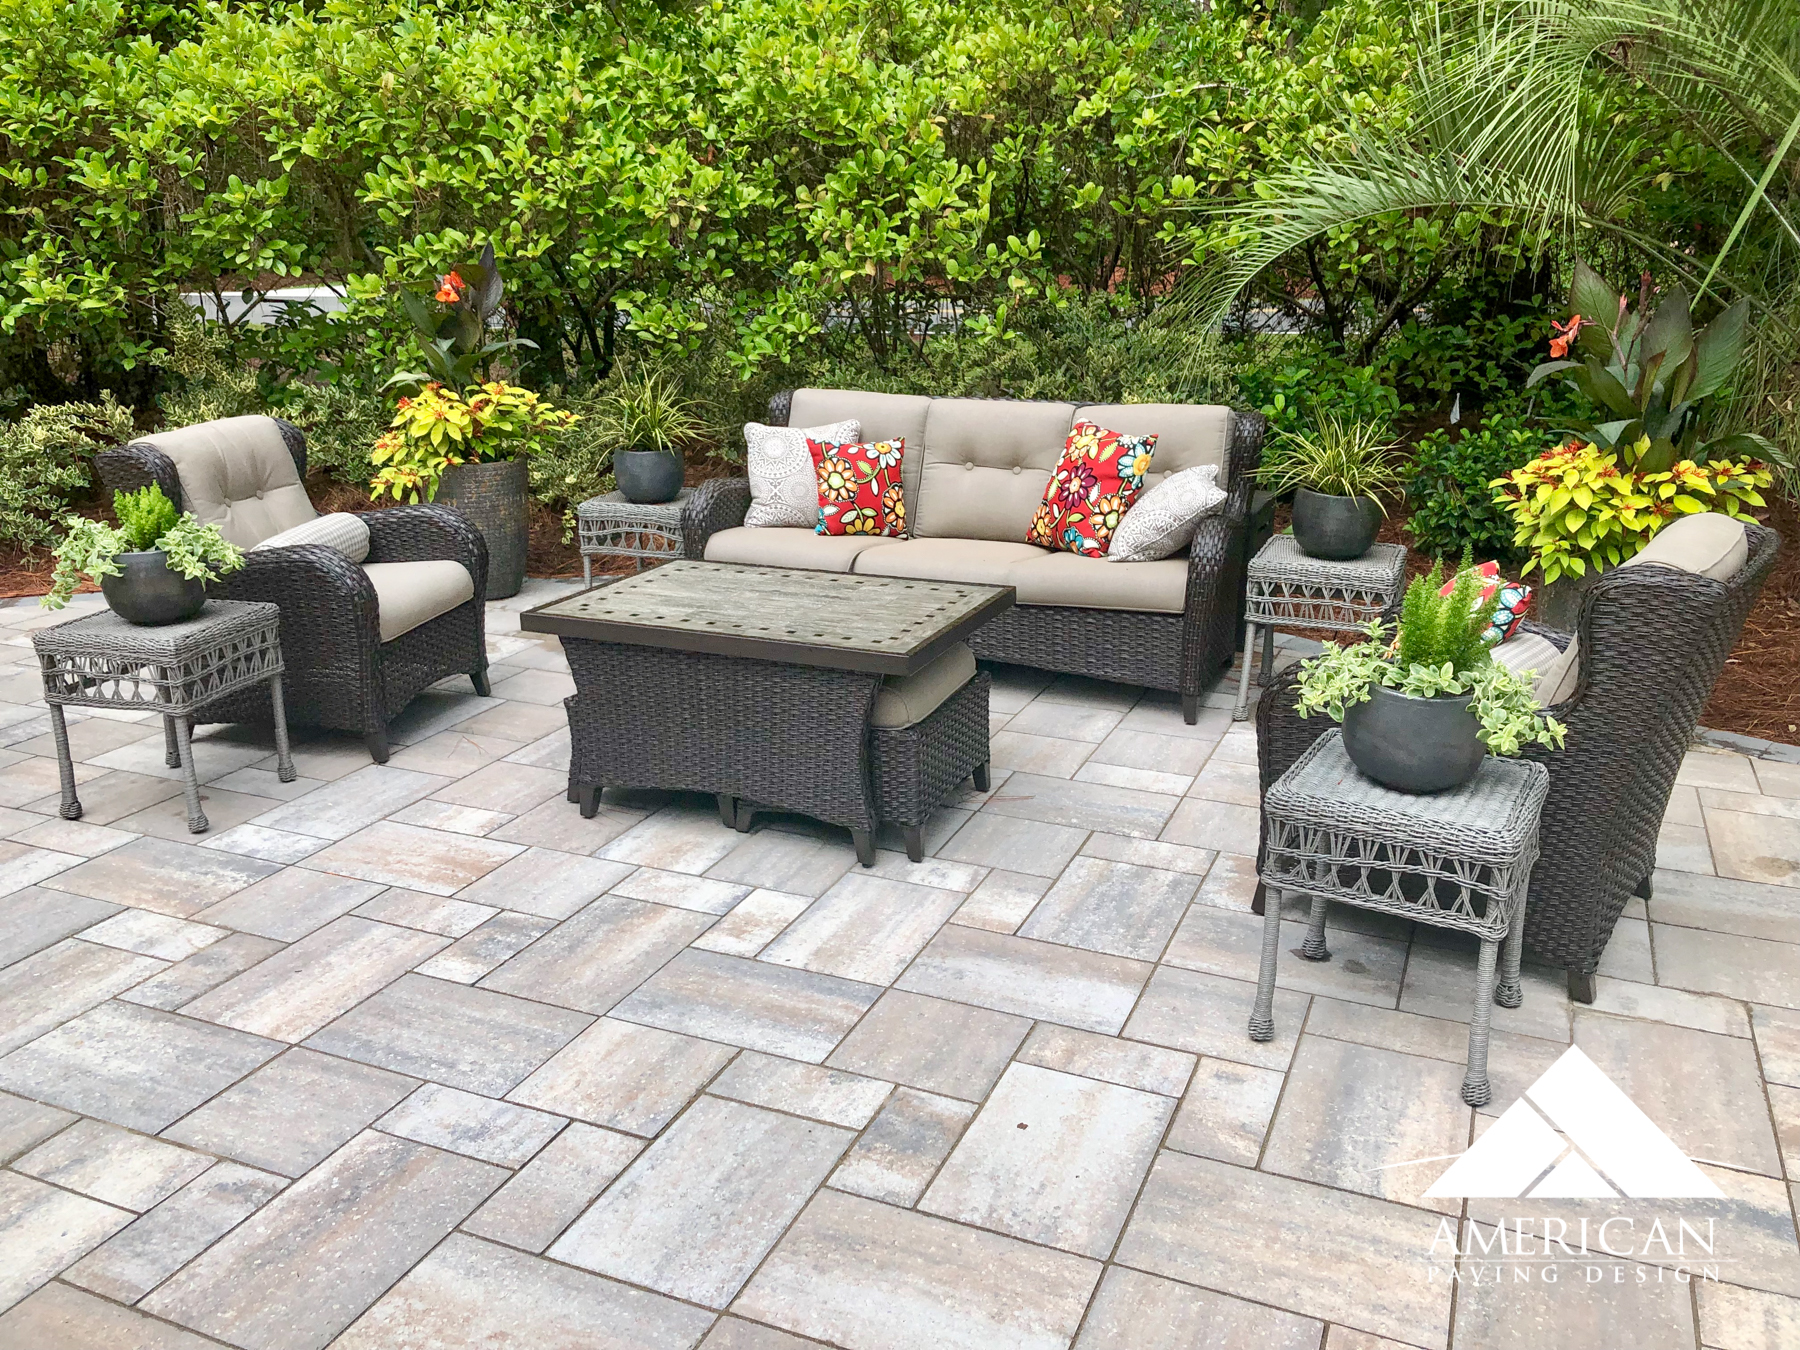 Large paver patio stones are ideal. These oversized pavers can create quite the statement and allow for quality family time!